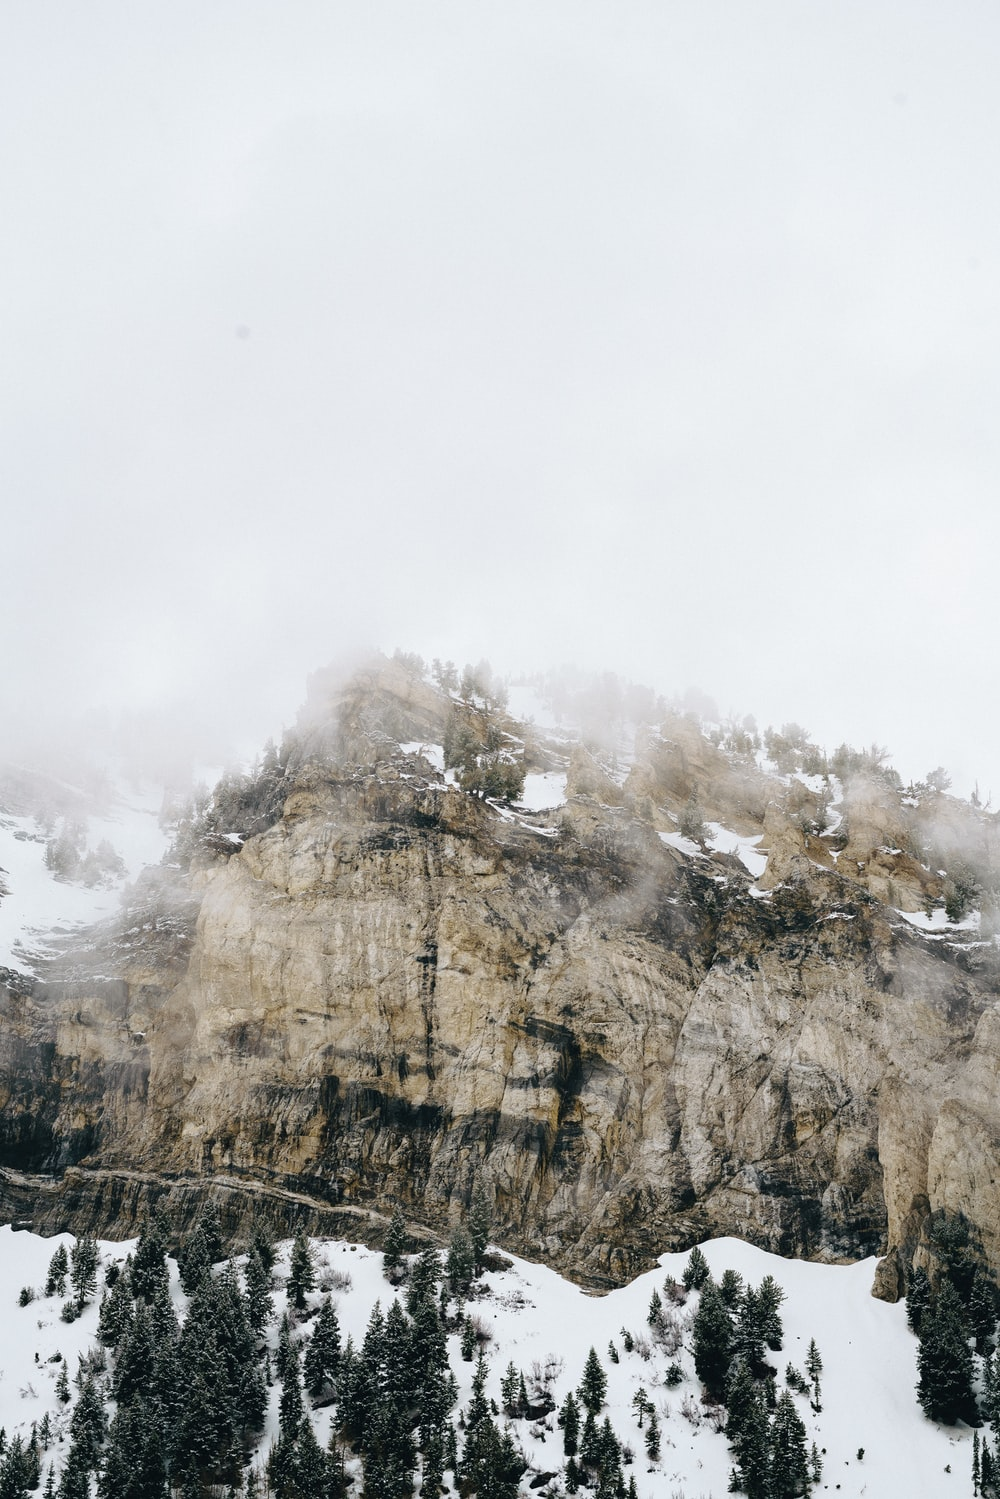 icy foggy mountain scenery